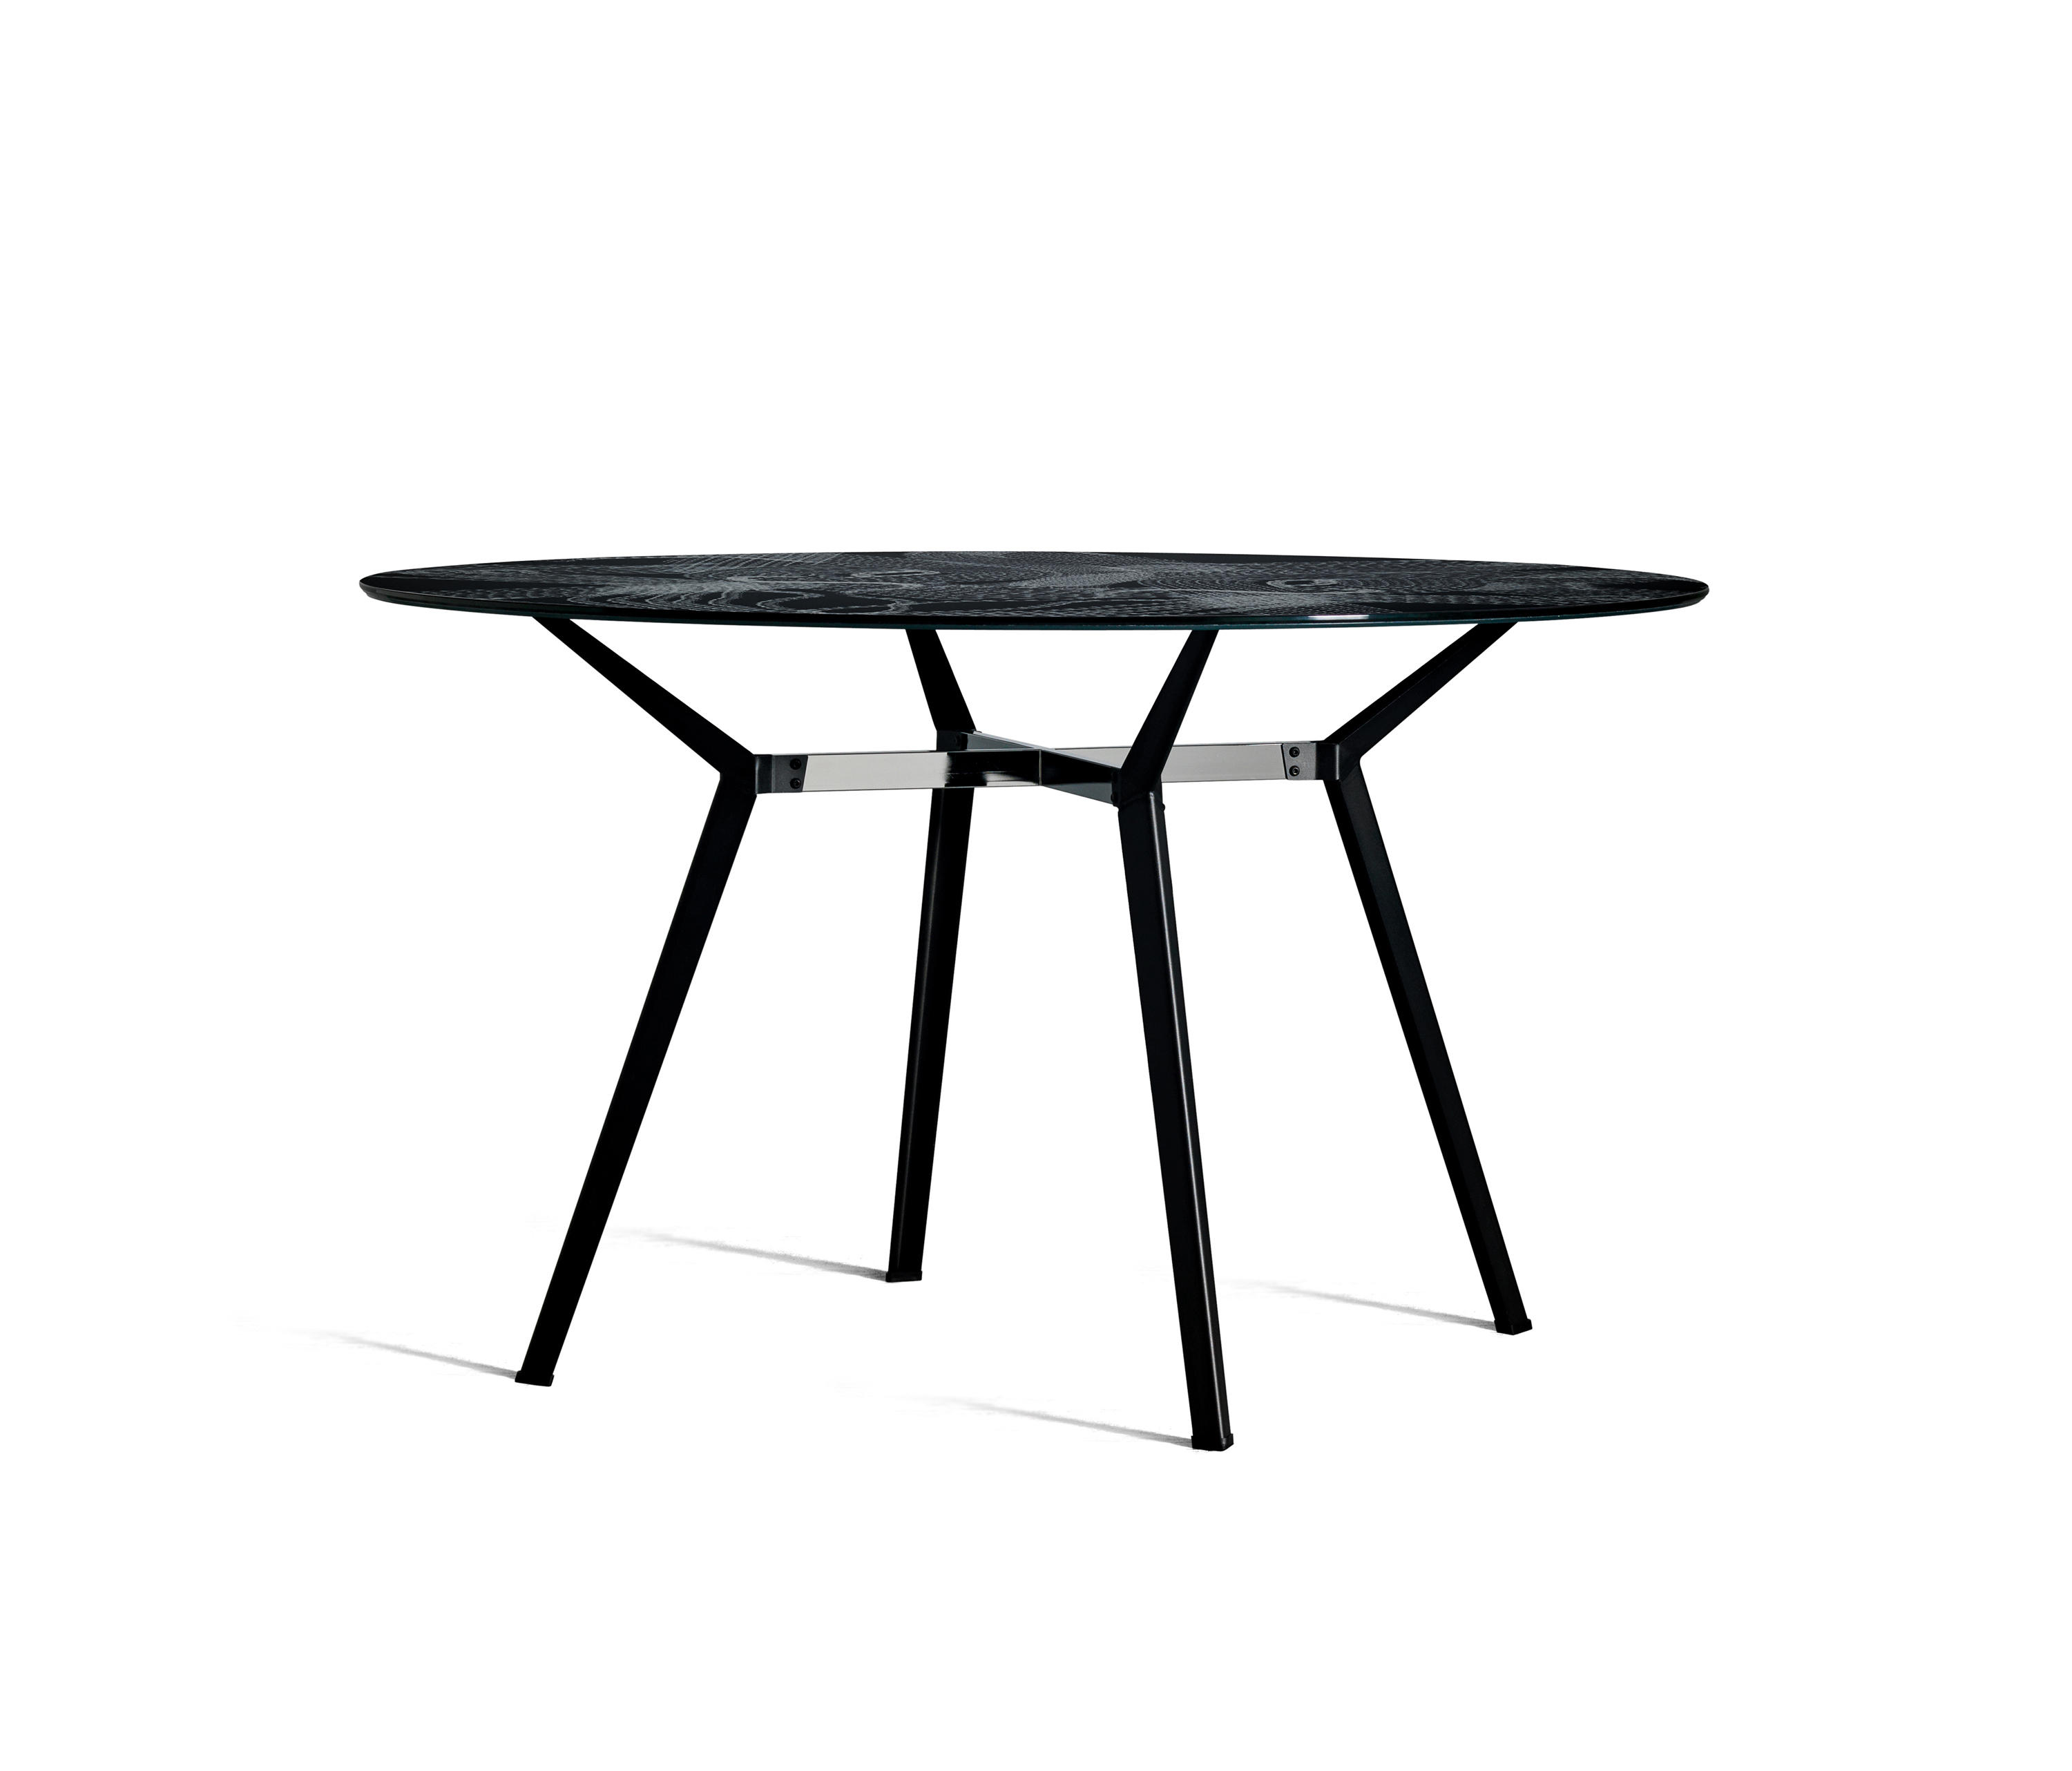 PYLON - Dining tables from Diesel by Moroso | Architonic